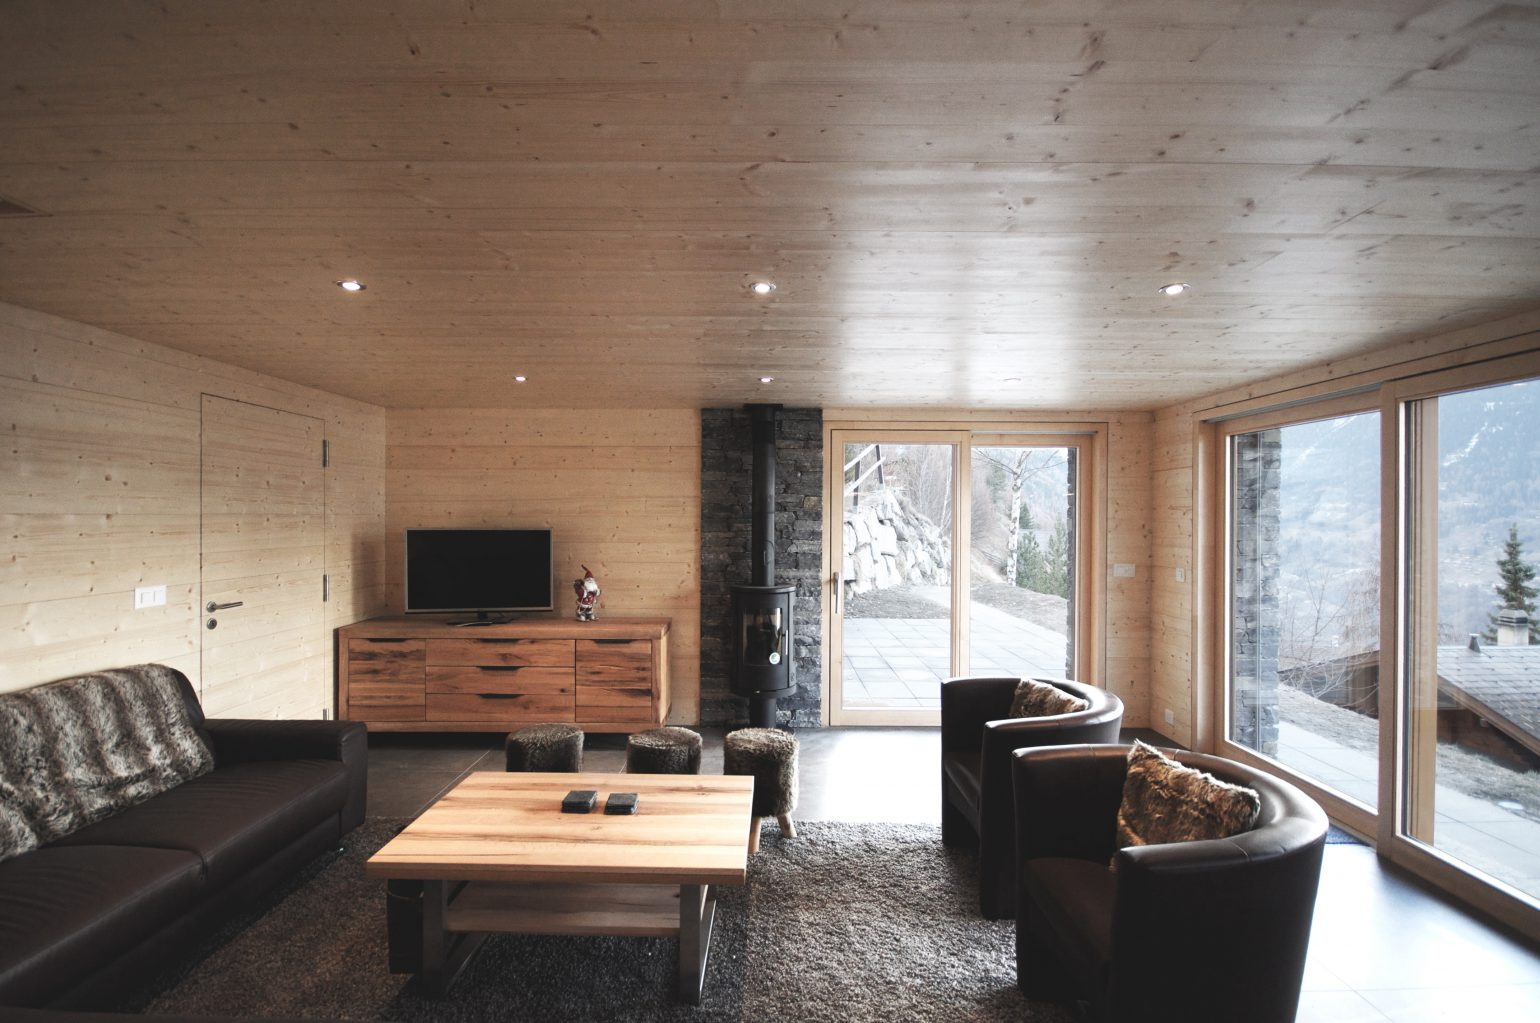 transformation-rénovation-chalet-coulon-veysonnaz-françois-meyer-architecture-sion-01